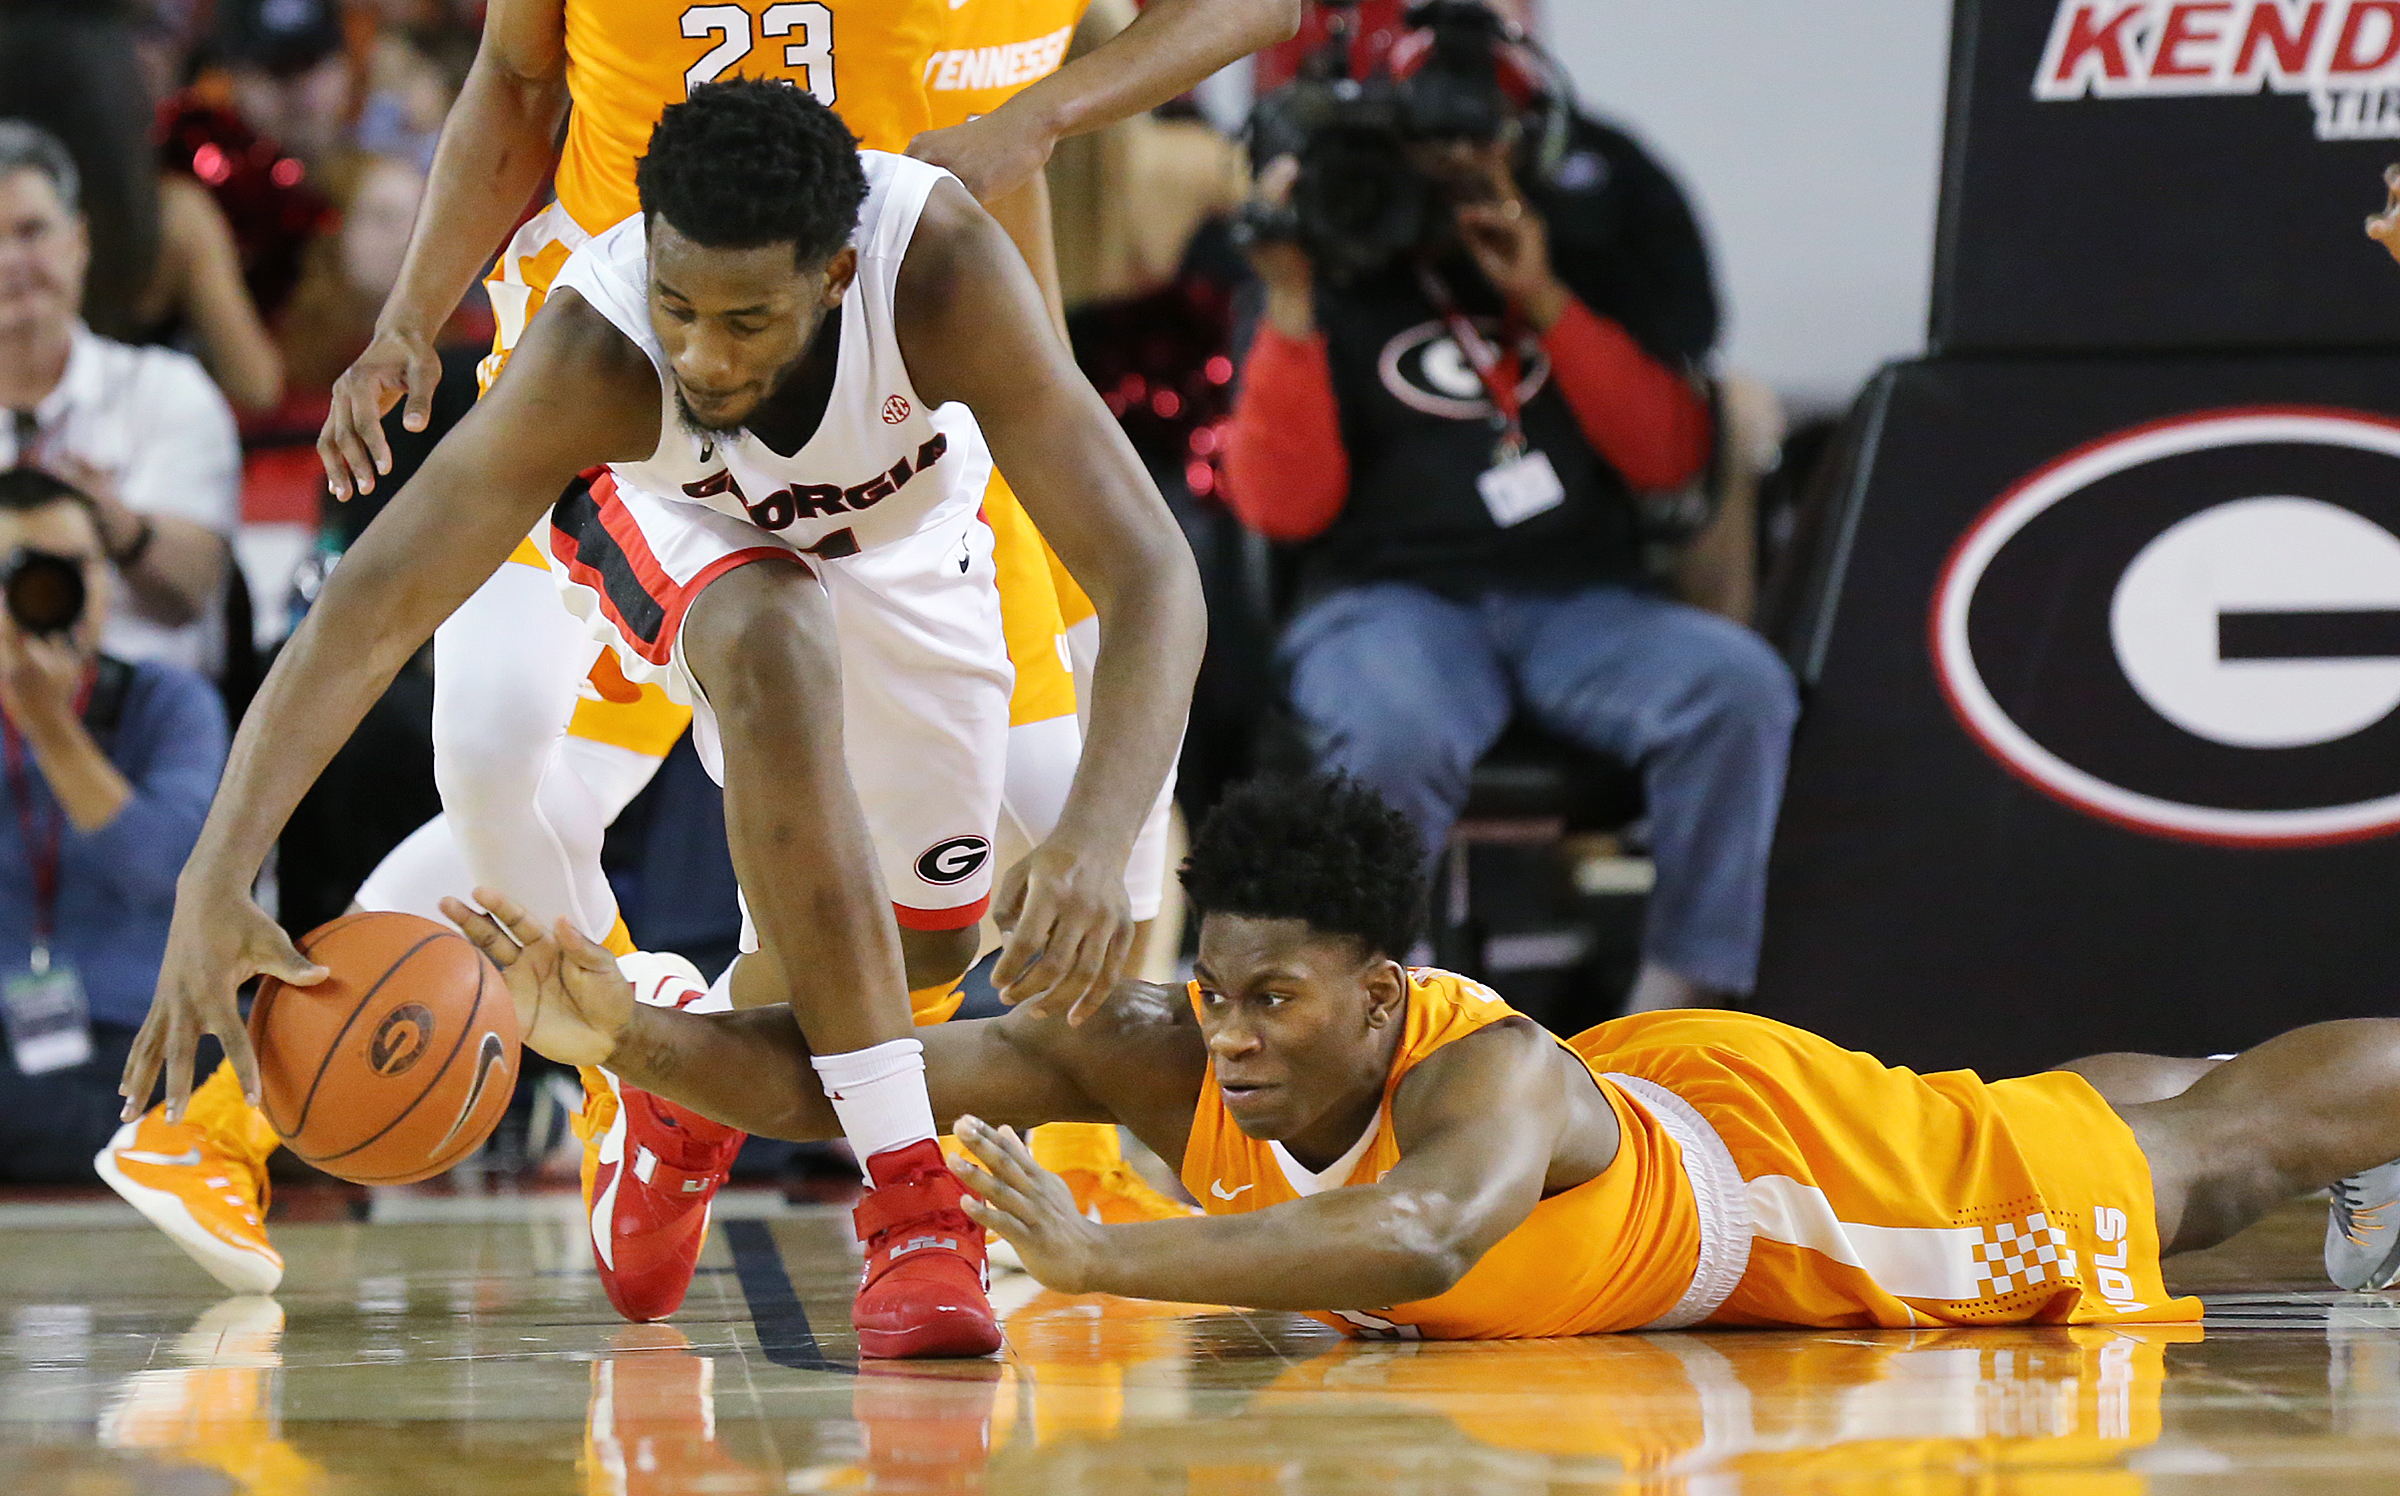 Georgia guard William Jackson II and Tennessee forward Admiral Schofield reach for the ball during the first half of an NCAA college basketball game Wednesday, Jan. 13, 2016, in Athens, Ga. (Curtis Compton/Atlanta Journal Constitution via AP)